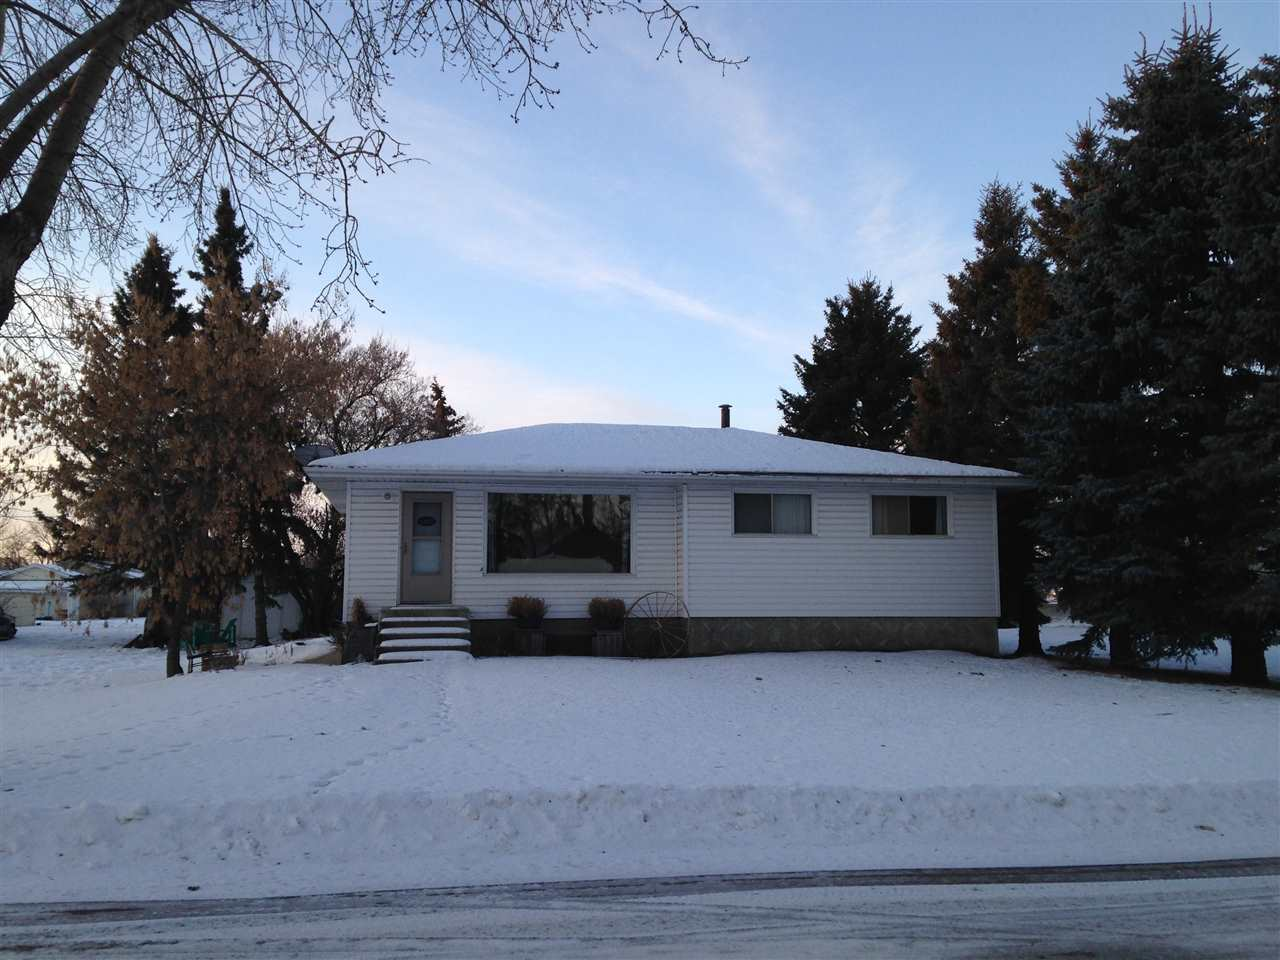 Ready to move in to this 3+1 bedroom, 2 bathroom bungalow on 50 X 140' lot and including the adjacent 50 X 140' lot (separate title). Substantial upgrades including kitchen, flooring, paint, lighting, siding and the fully finished basement with bedroom, bathroom, rumpus room and bar. Plenty of room in the private back yard to build a shop or garage. A great retirement or starter family home with room to grow.